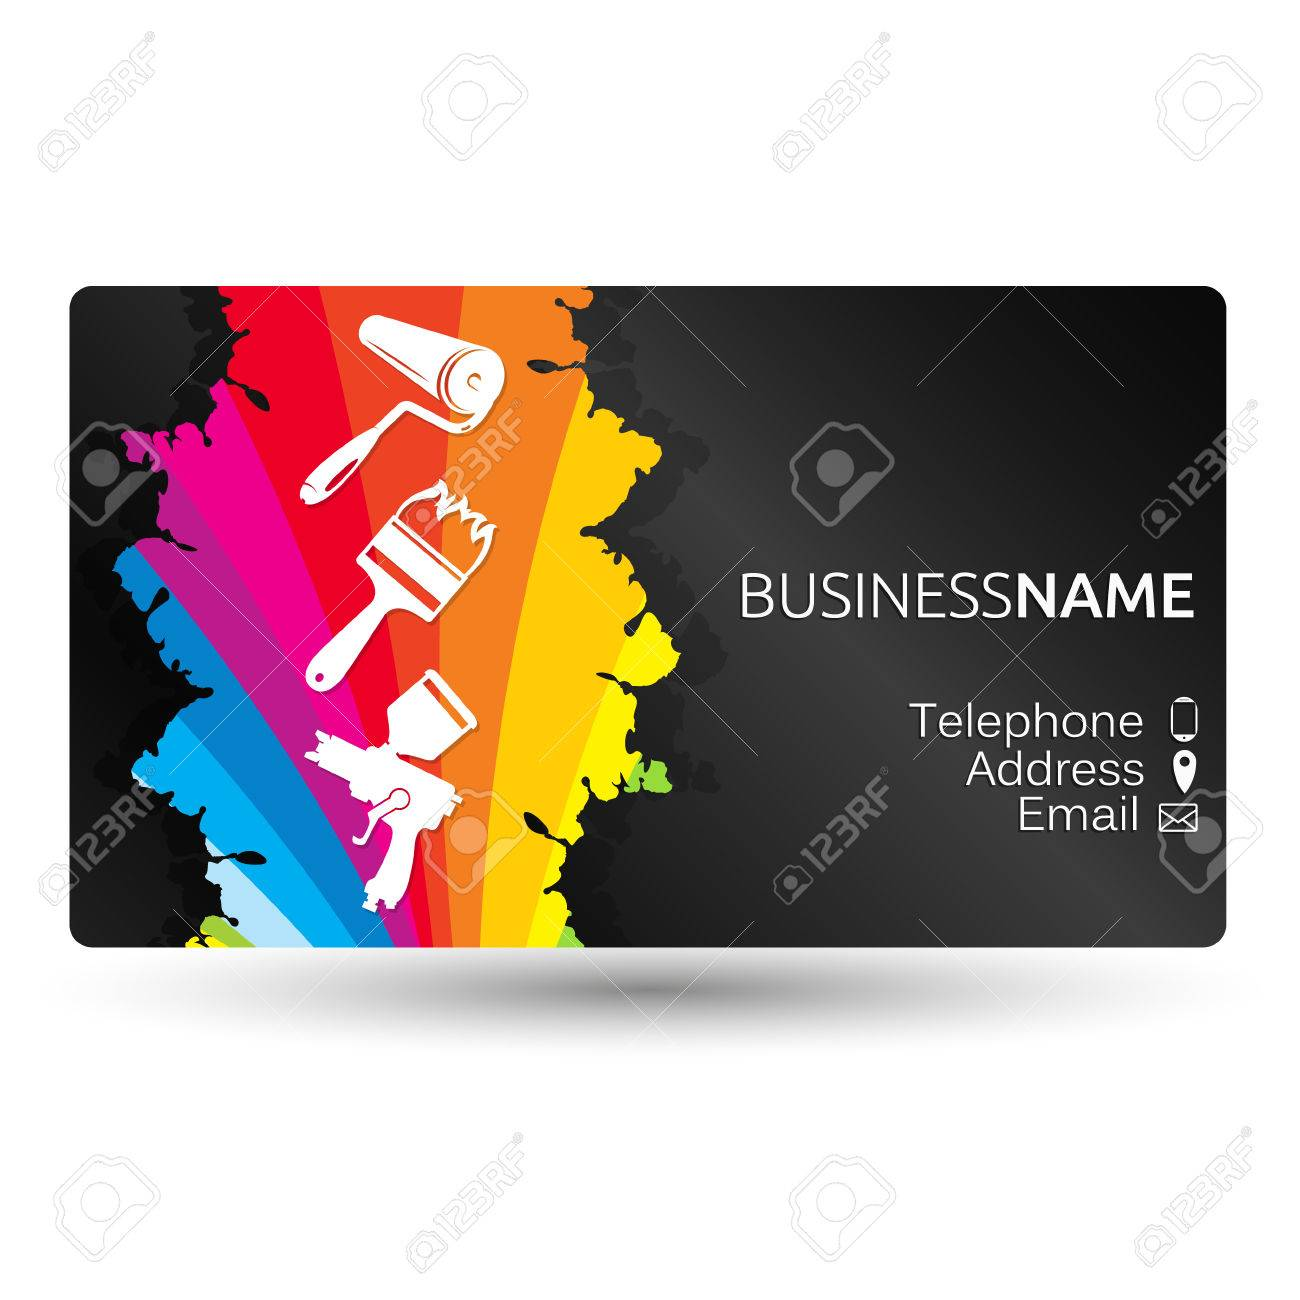 Business card for painting business layout royalty free cliparts business card for painting business layout stock vector 73863958 colourmoves